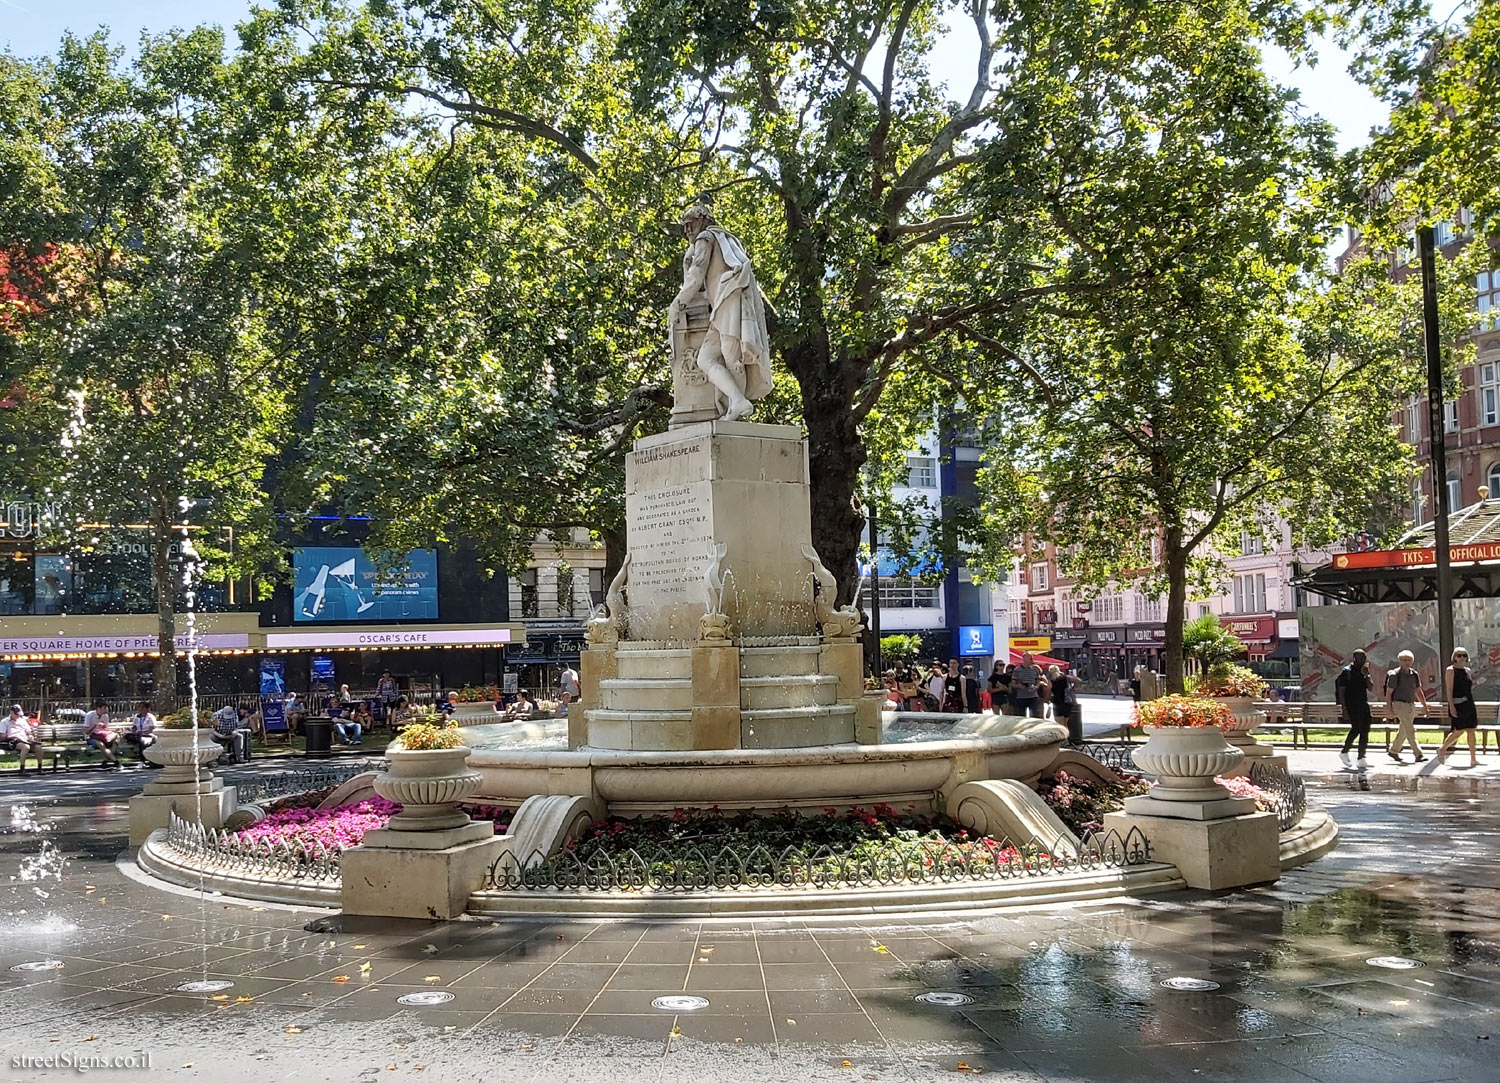 London - Leicester Square - Statue of William Shakespeare